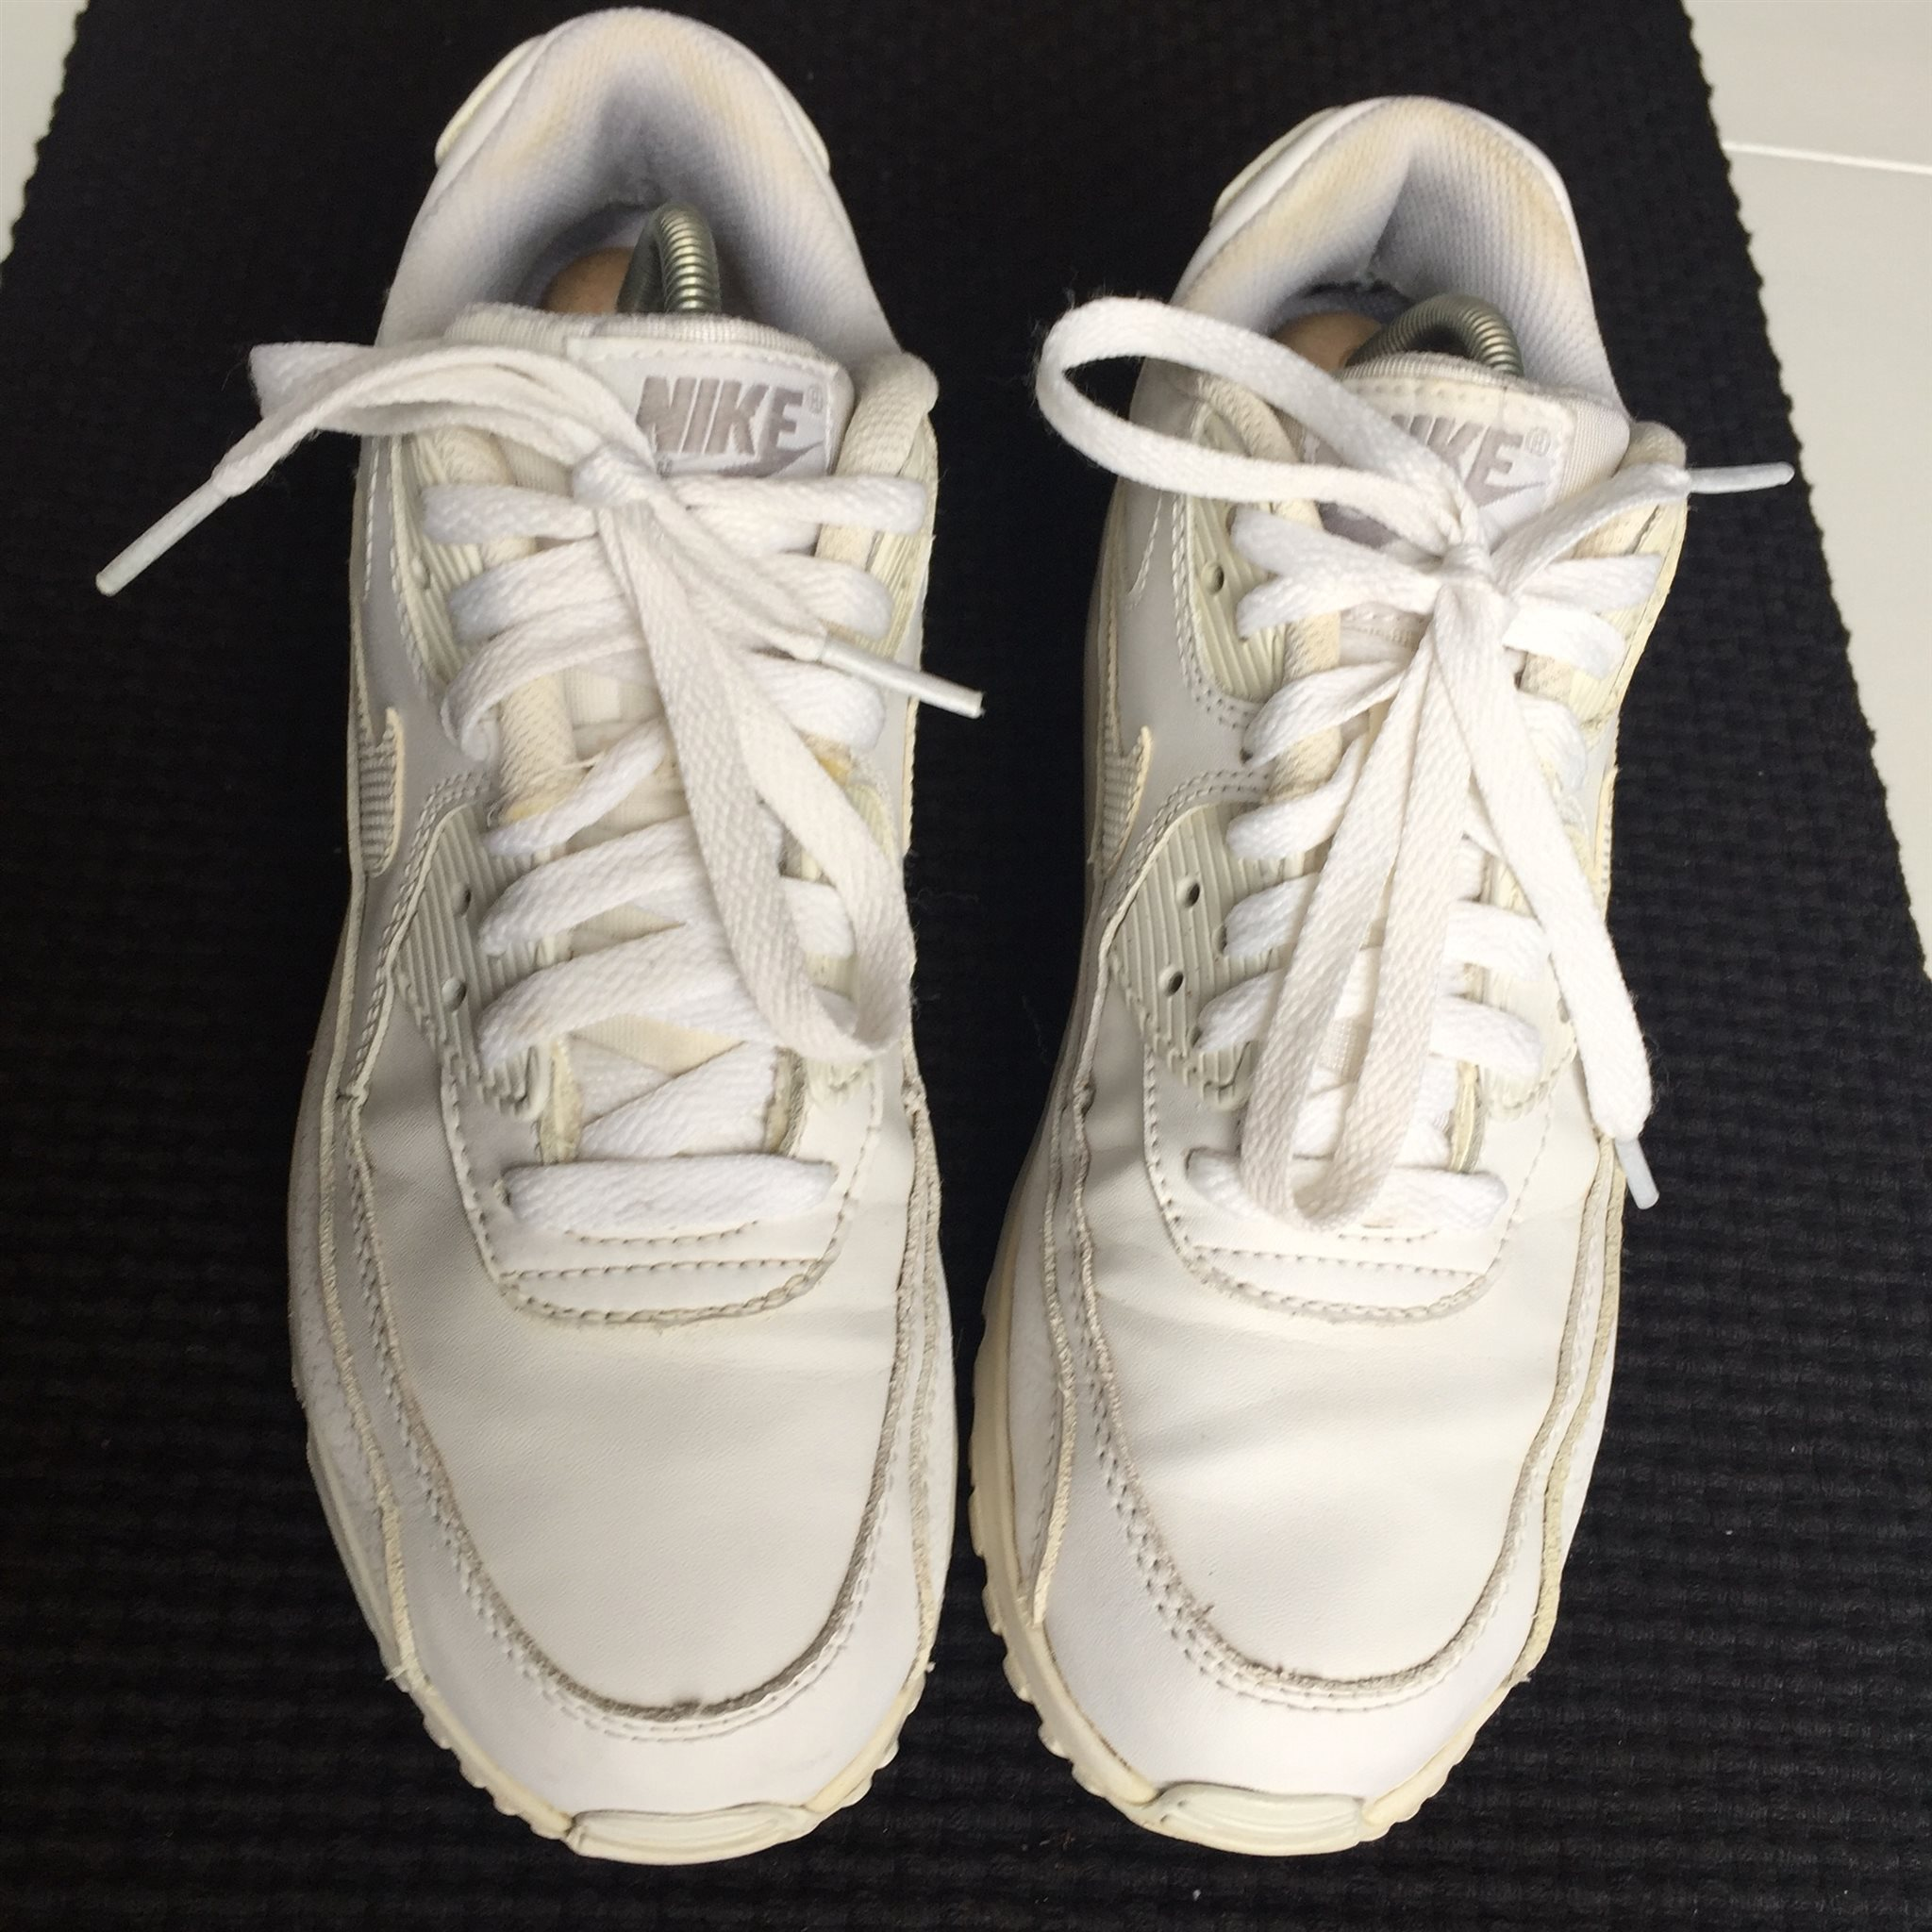 new products 311a9 579a1 ... low cost nike air max vita sneakers skor 365 36 c4a77 7535d